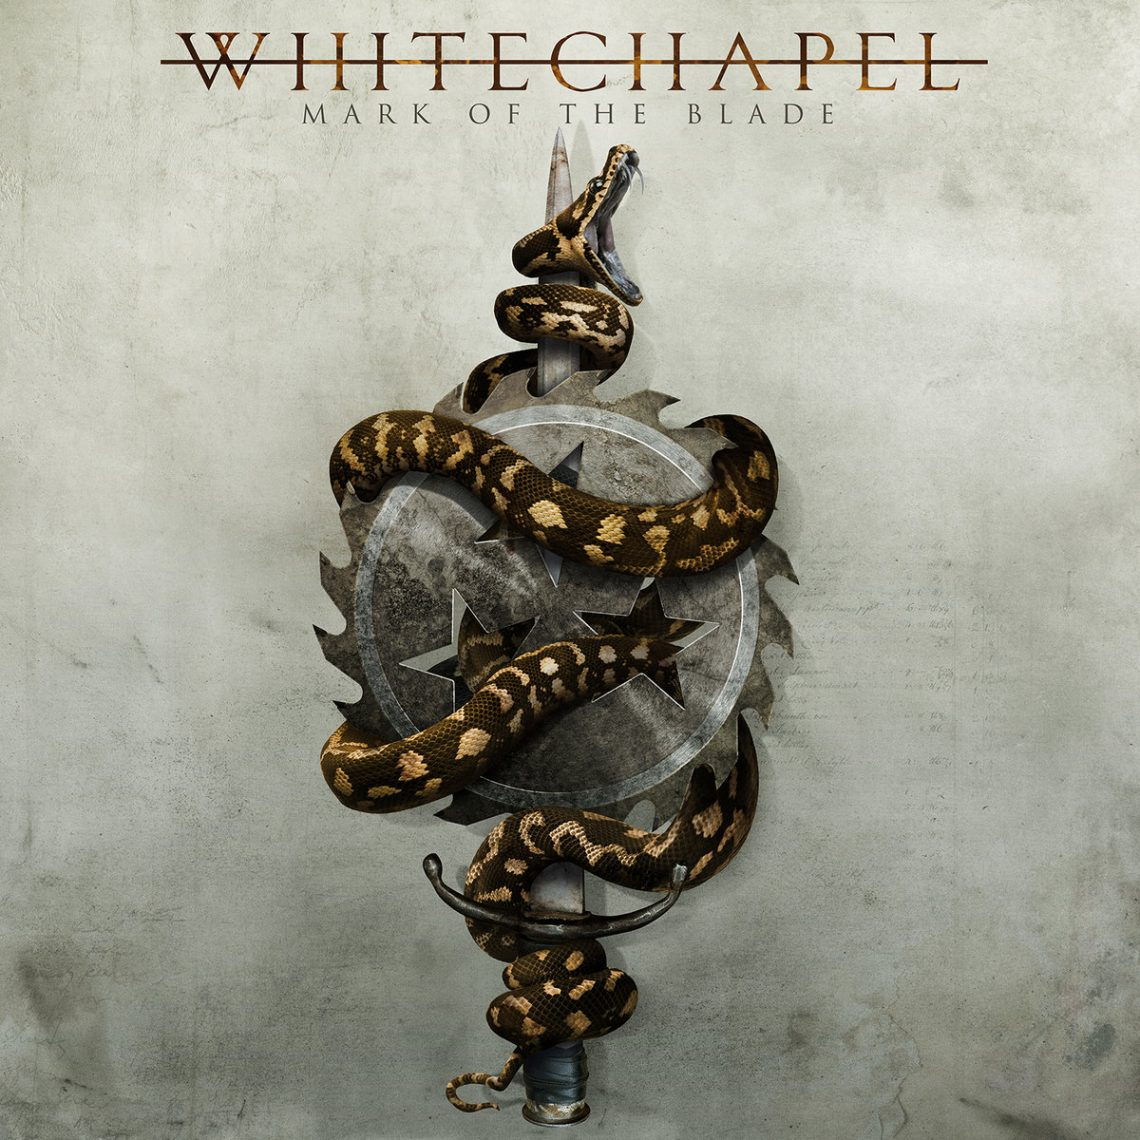 Whitechapel – Mark of the Blade CD Review